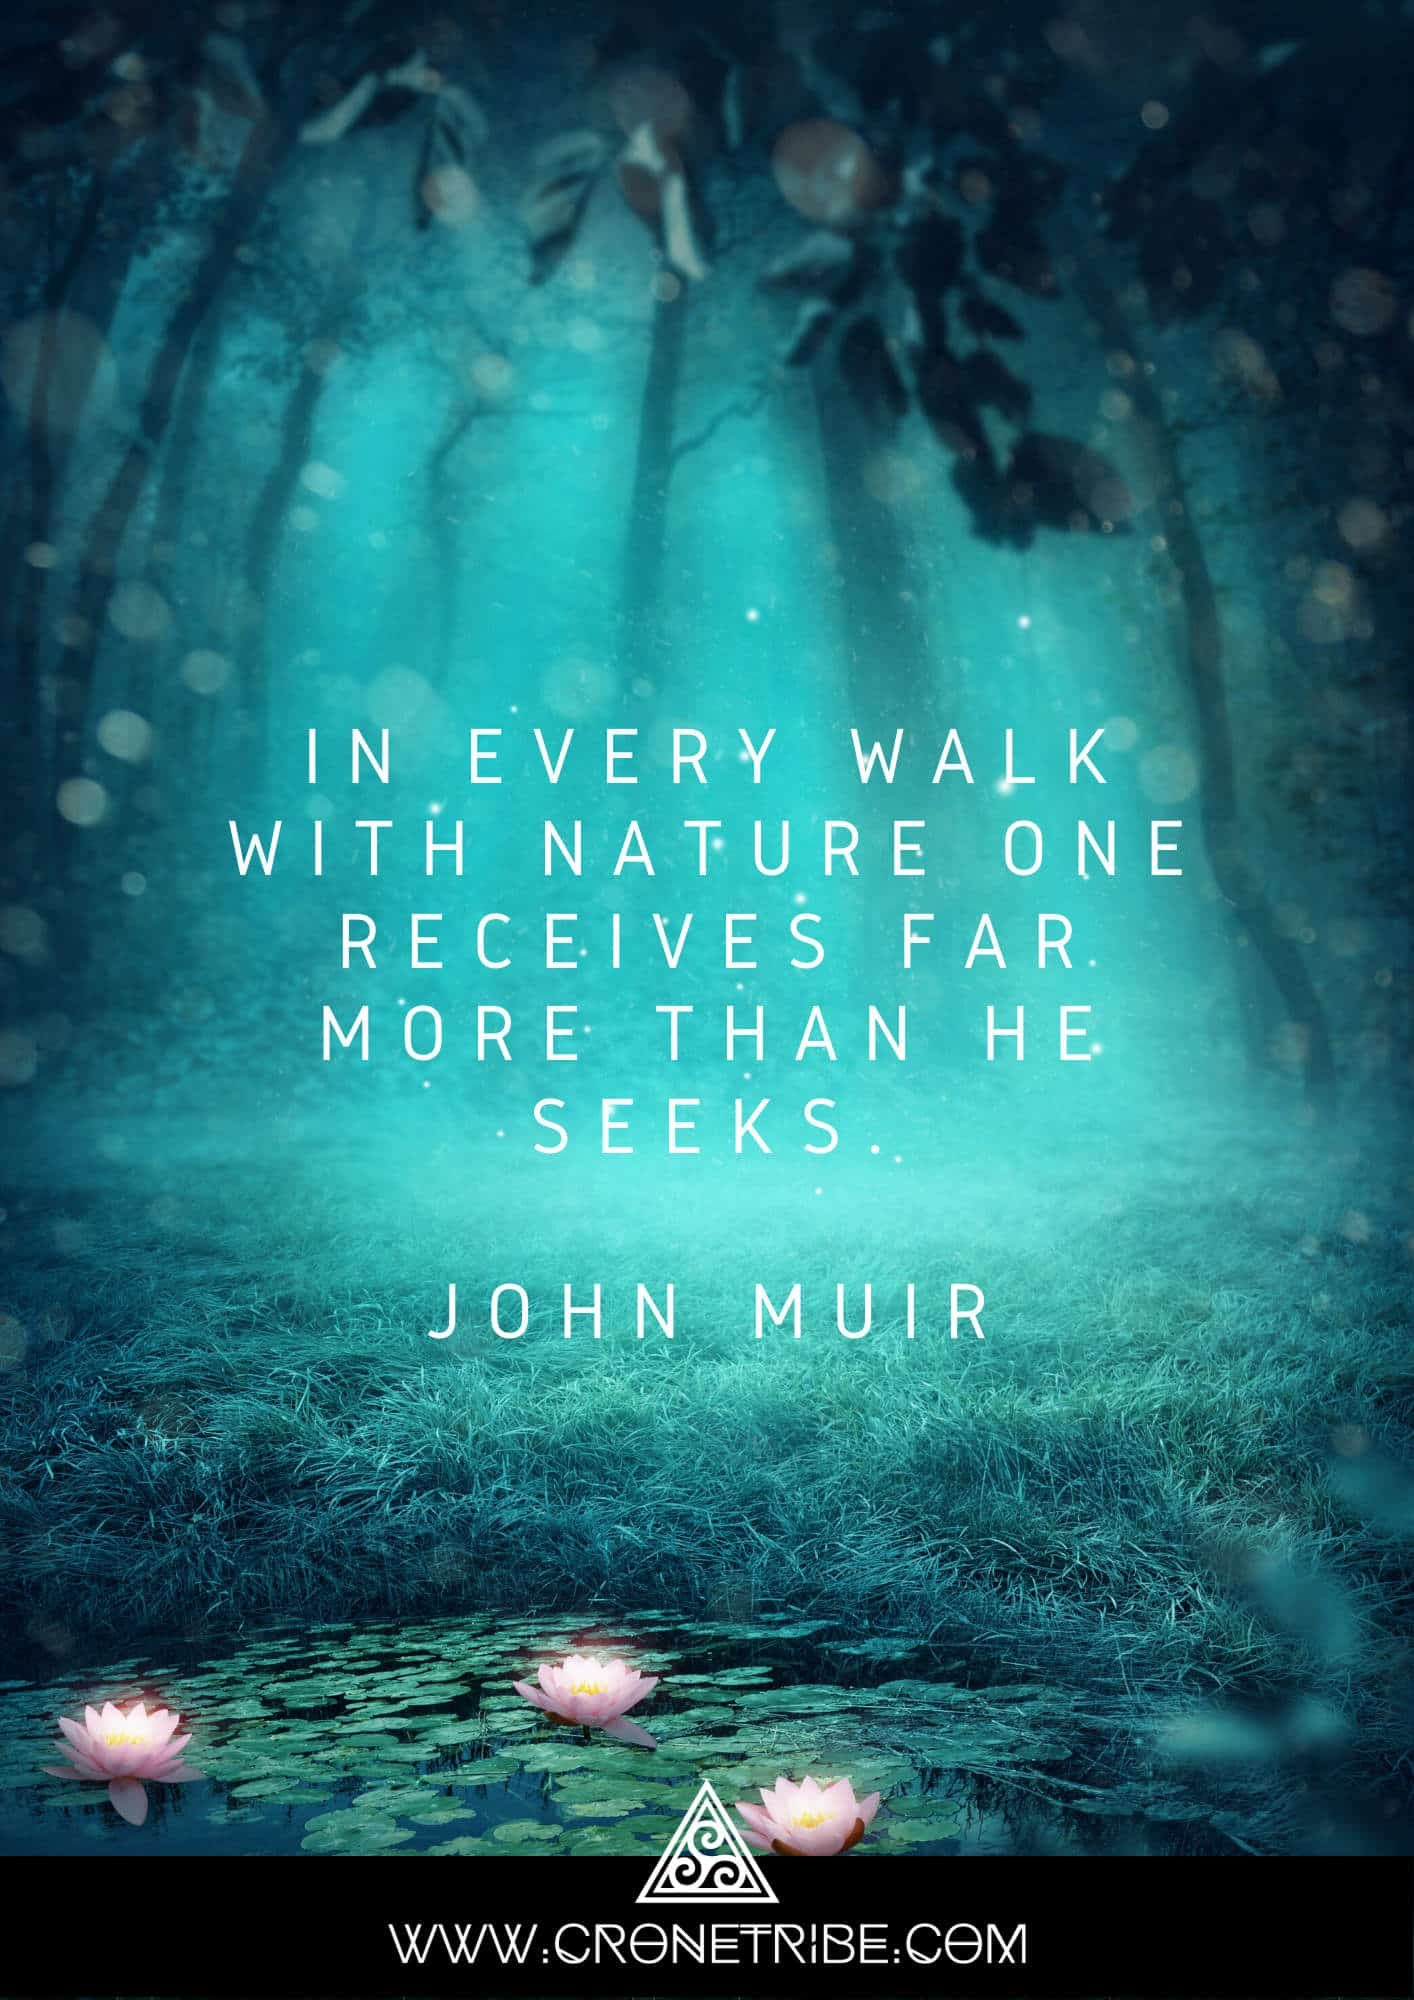 In every walk with nature one receives far more than he seeks. John Muir